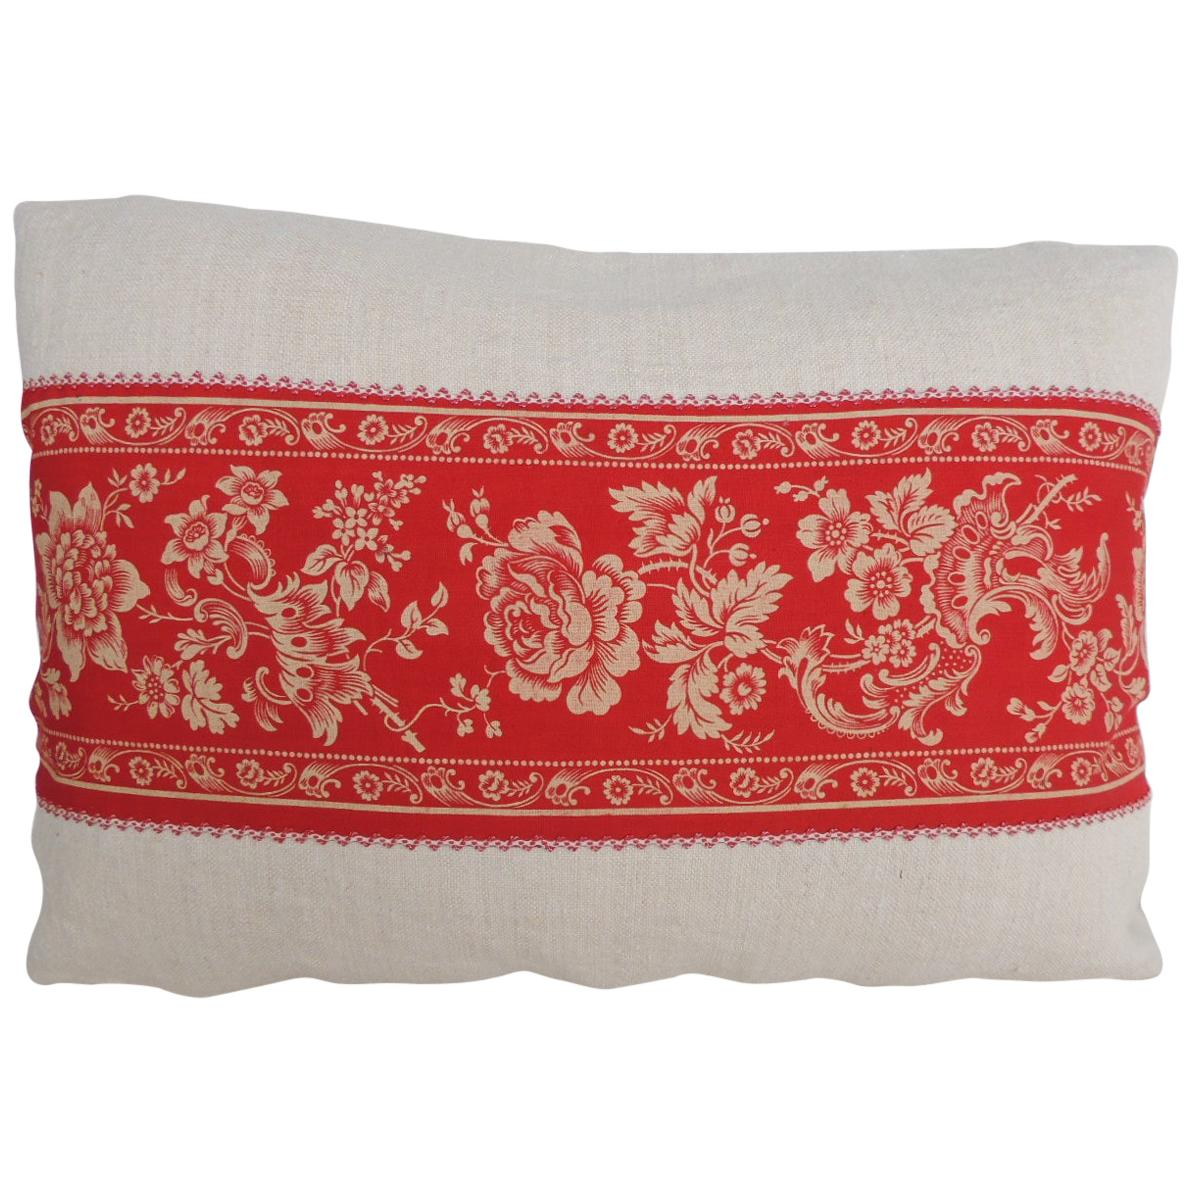 Pink and Red French Floral Decorative Lumbar Decorative Pillow